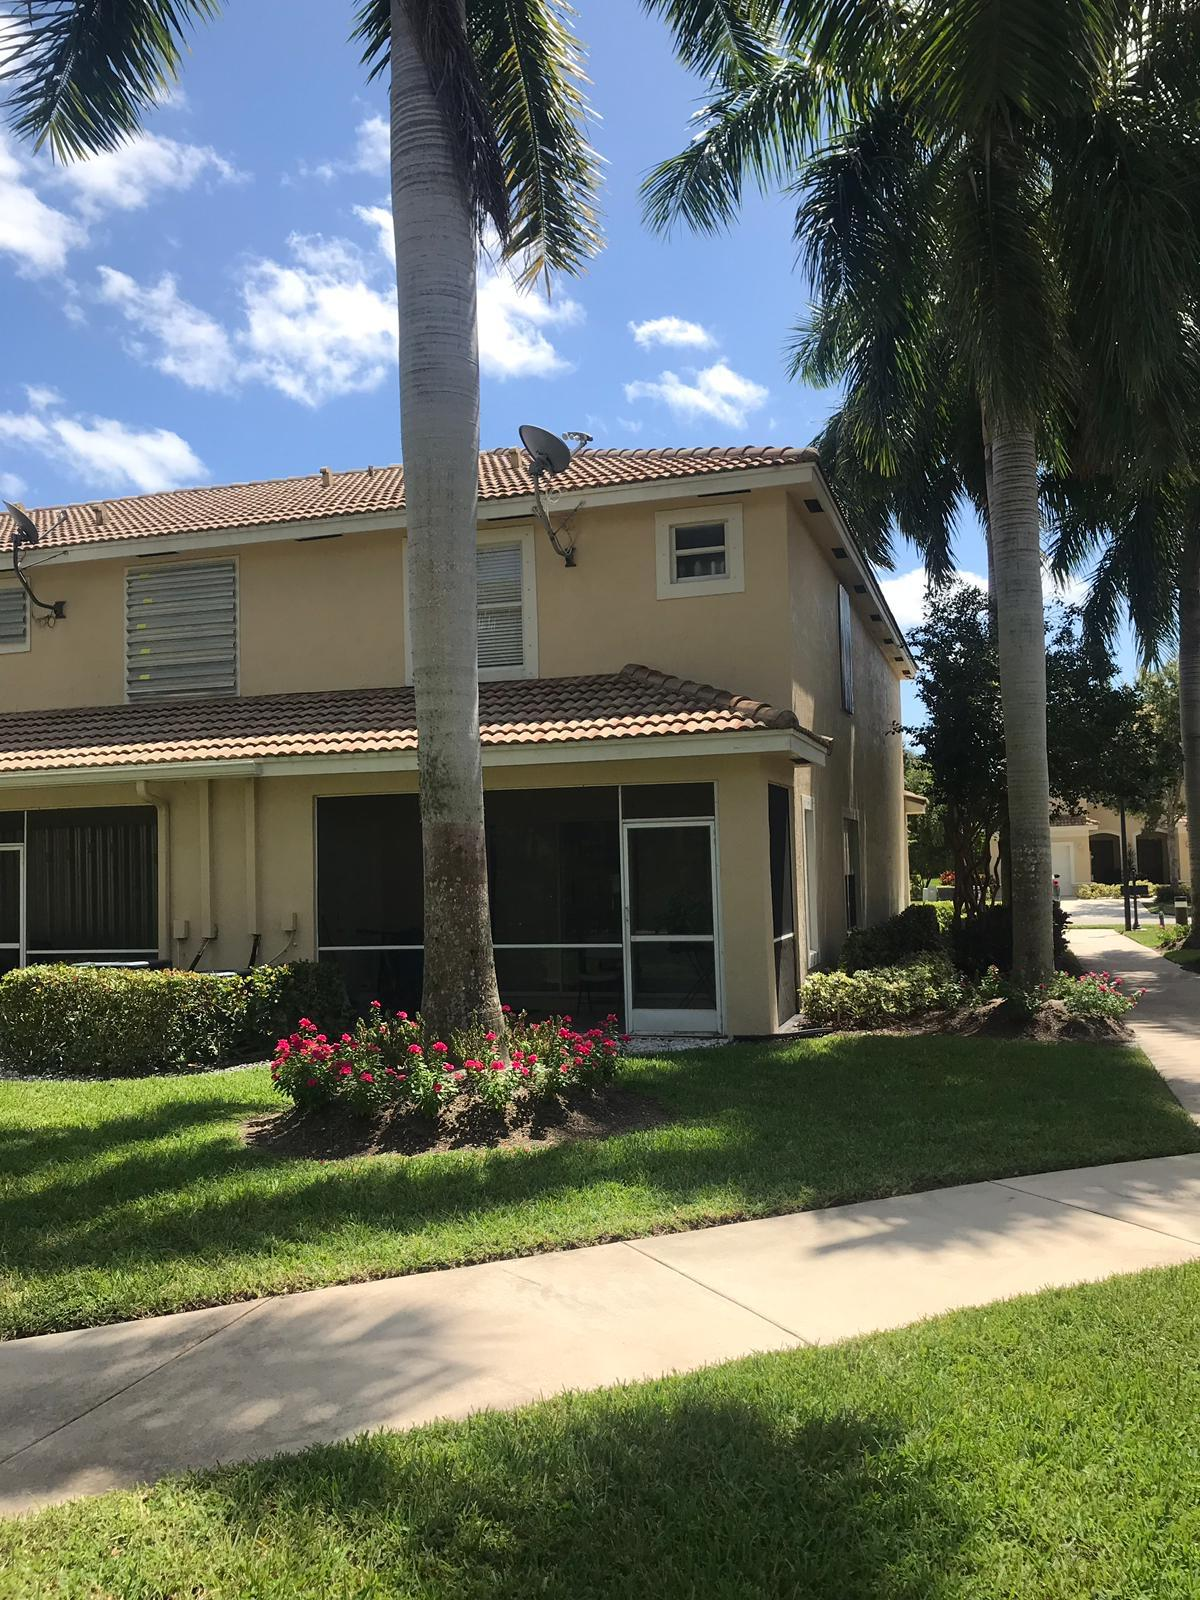 BEAUTIFUL 3BR/2BA CORNER UNIT IN DESIRABLE TOWNE PLACE .  RENTED UNTIL 12/15/2019, PLEASE DO NOT DISTURB RESIDENTS.